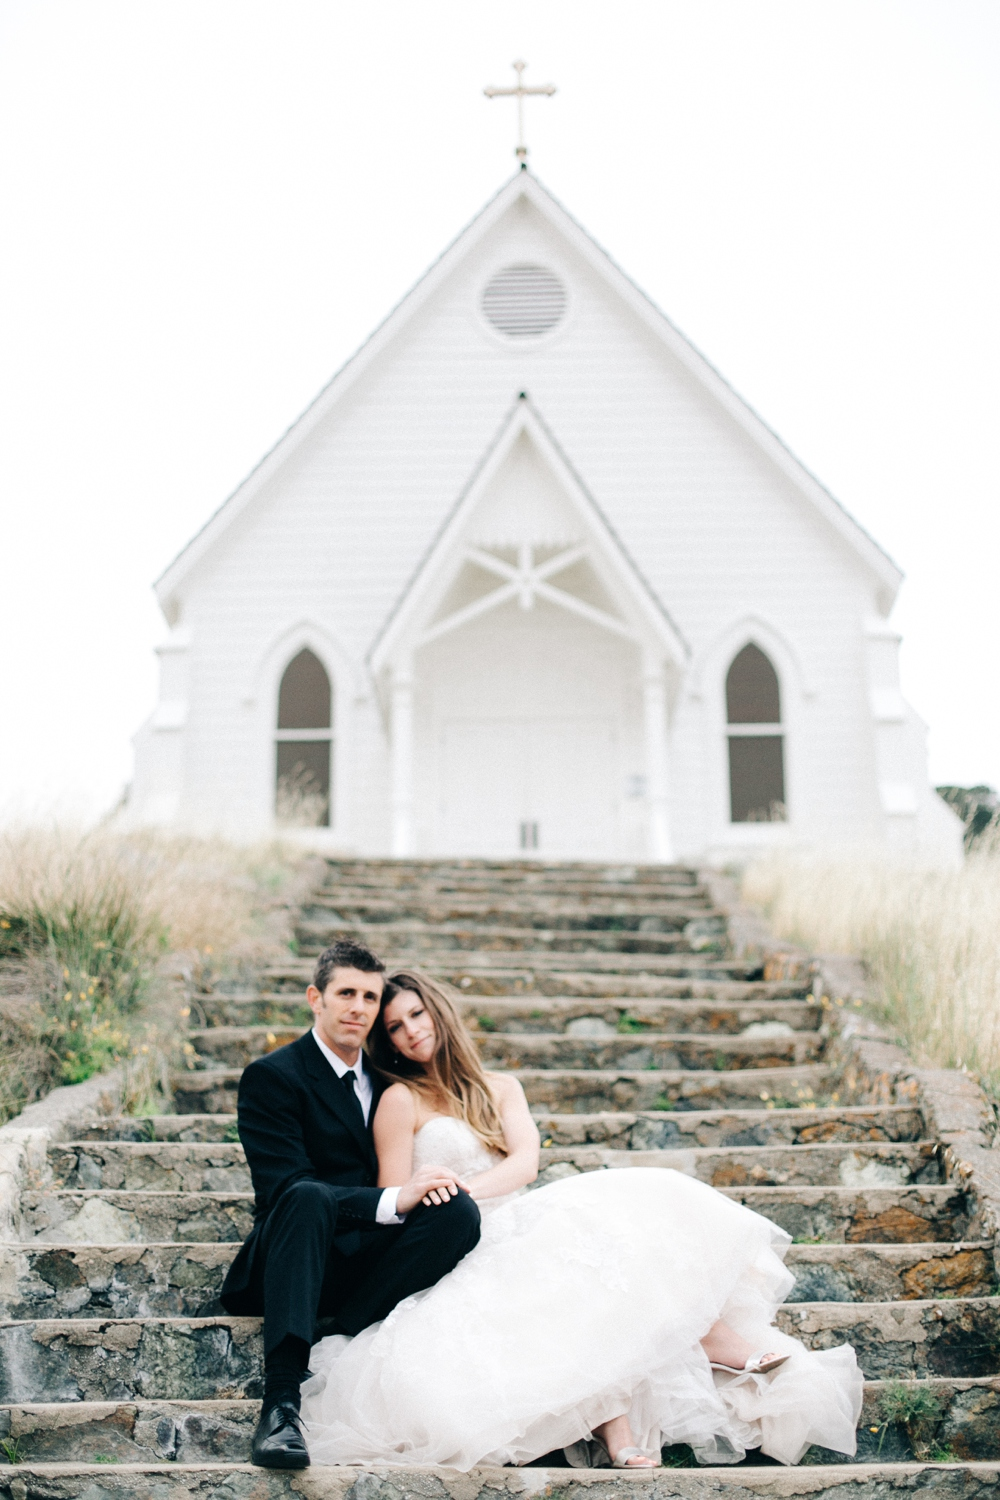 030_Old_St_Hilary_Chapel_Tiburon_California_Wedding_Photo.JPG